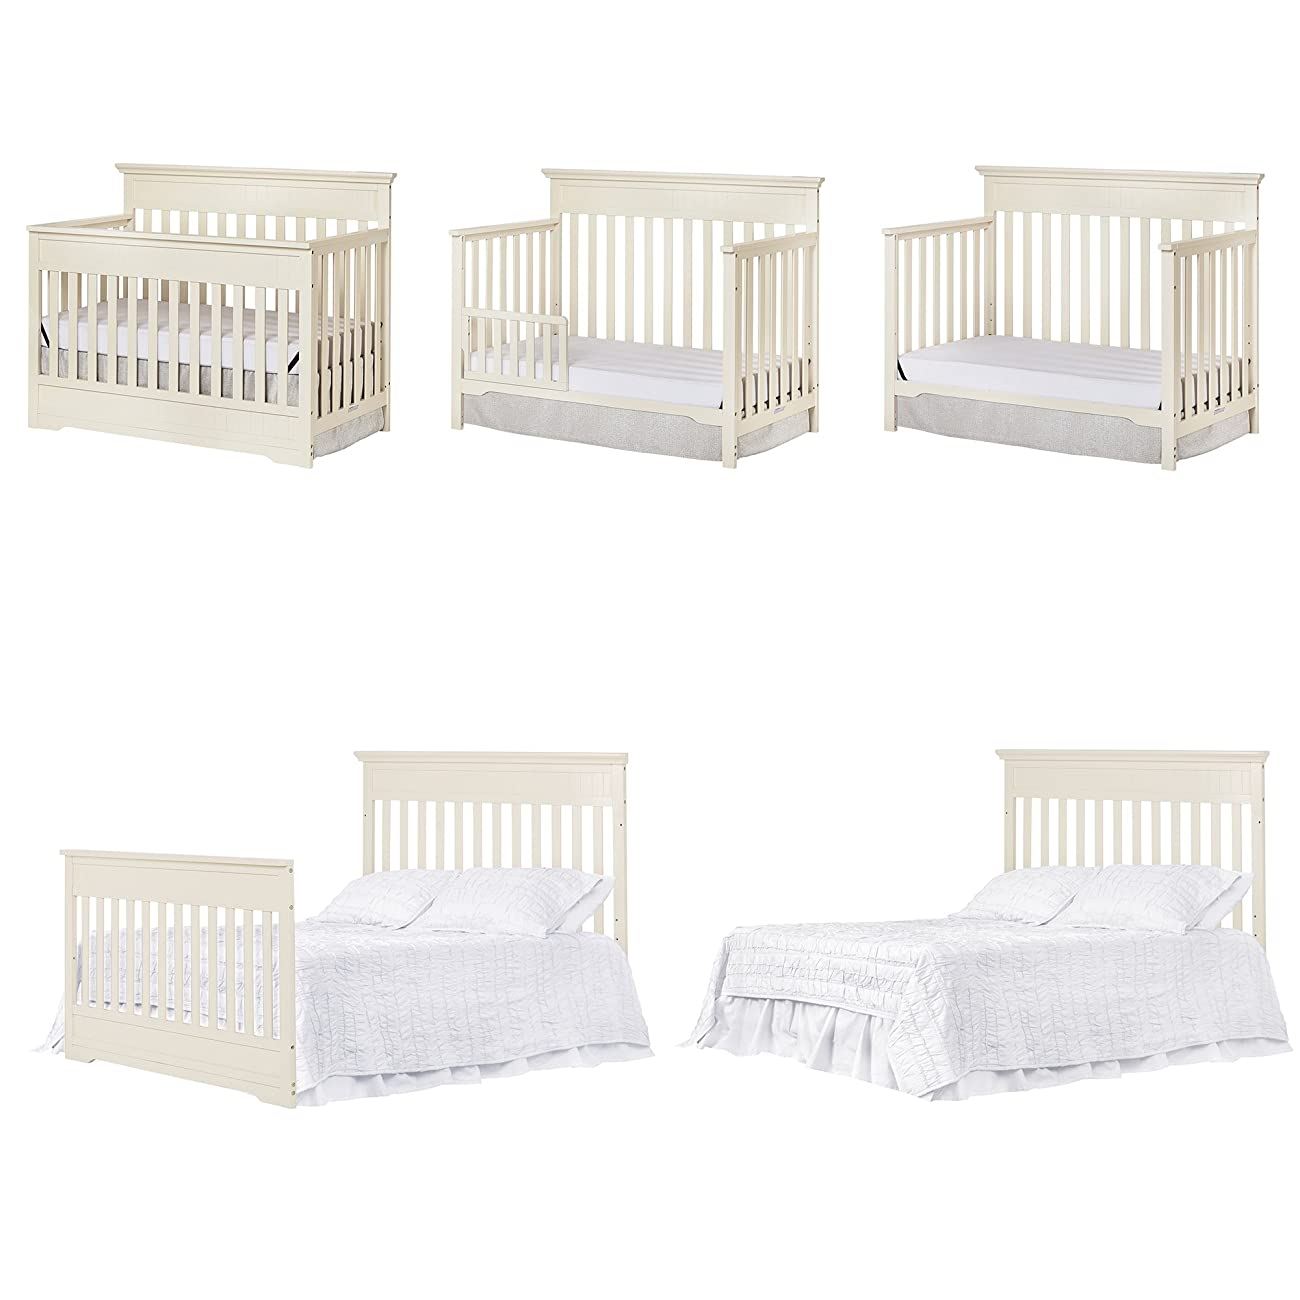 Dream On Me Chesapeake 5-In-1 Convertible Crib, French White 6